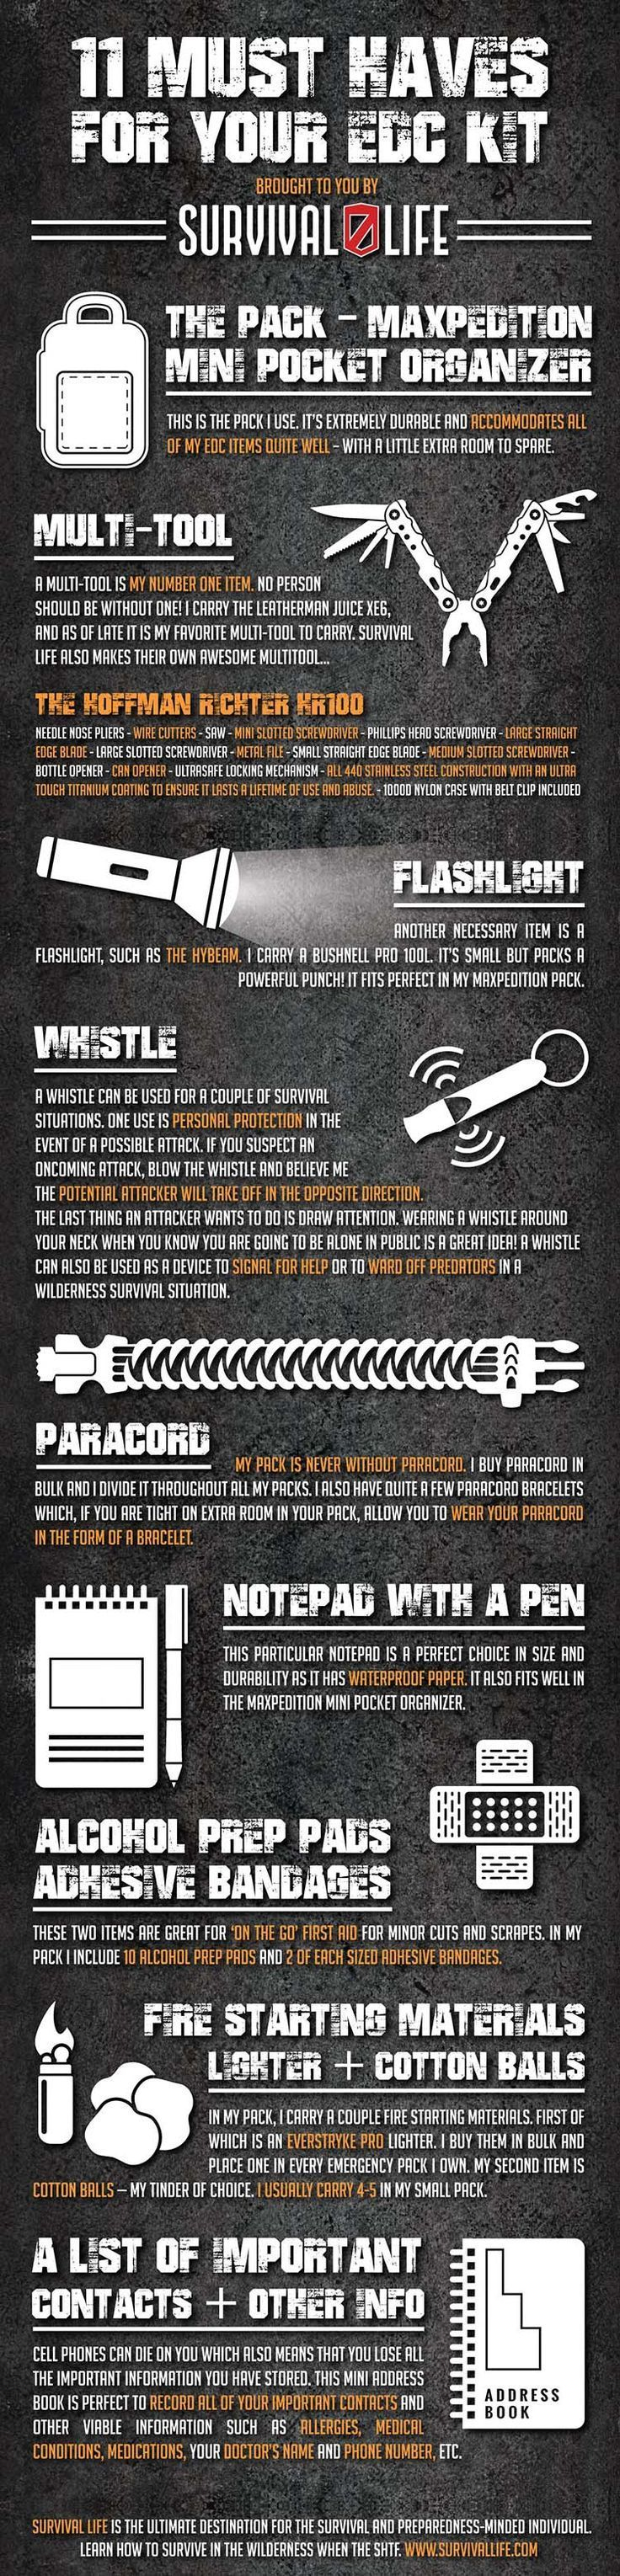 Must have survival gear for your EDC kit infographic.